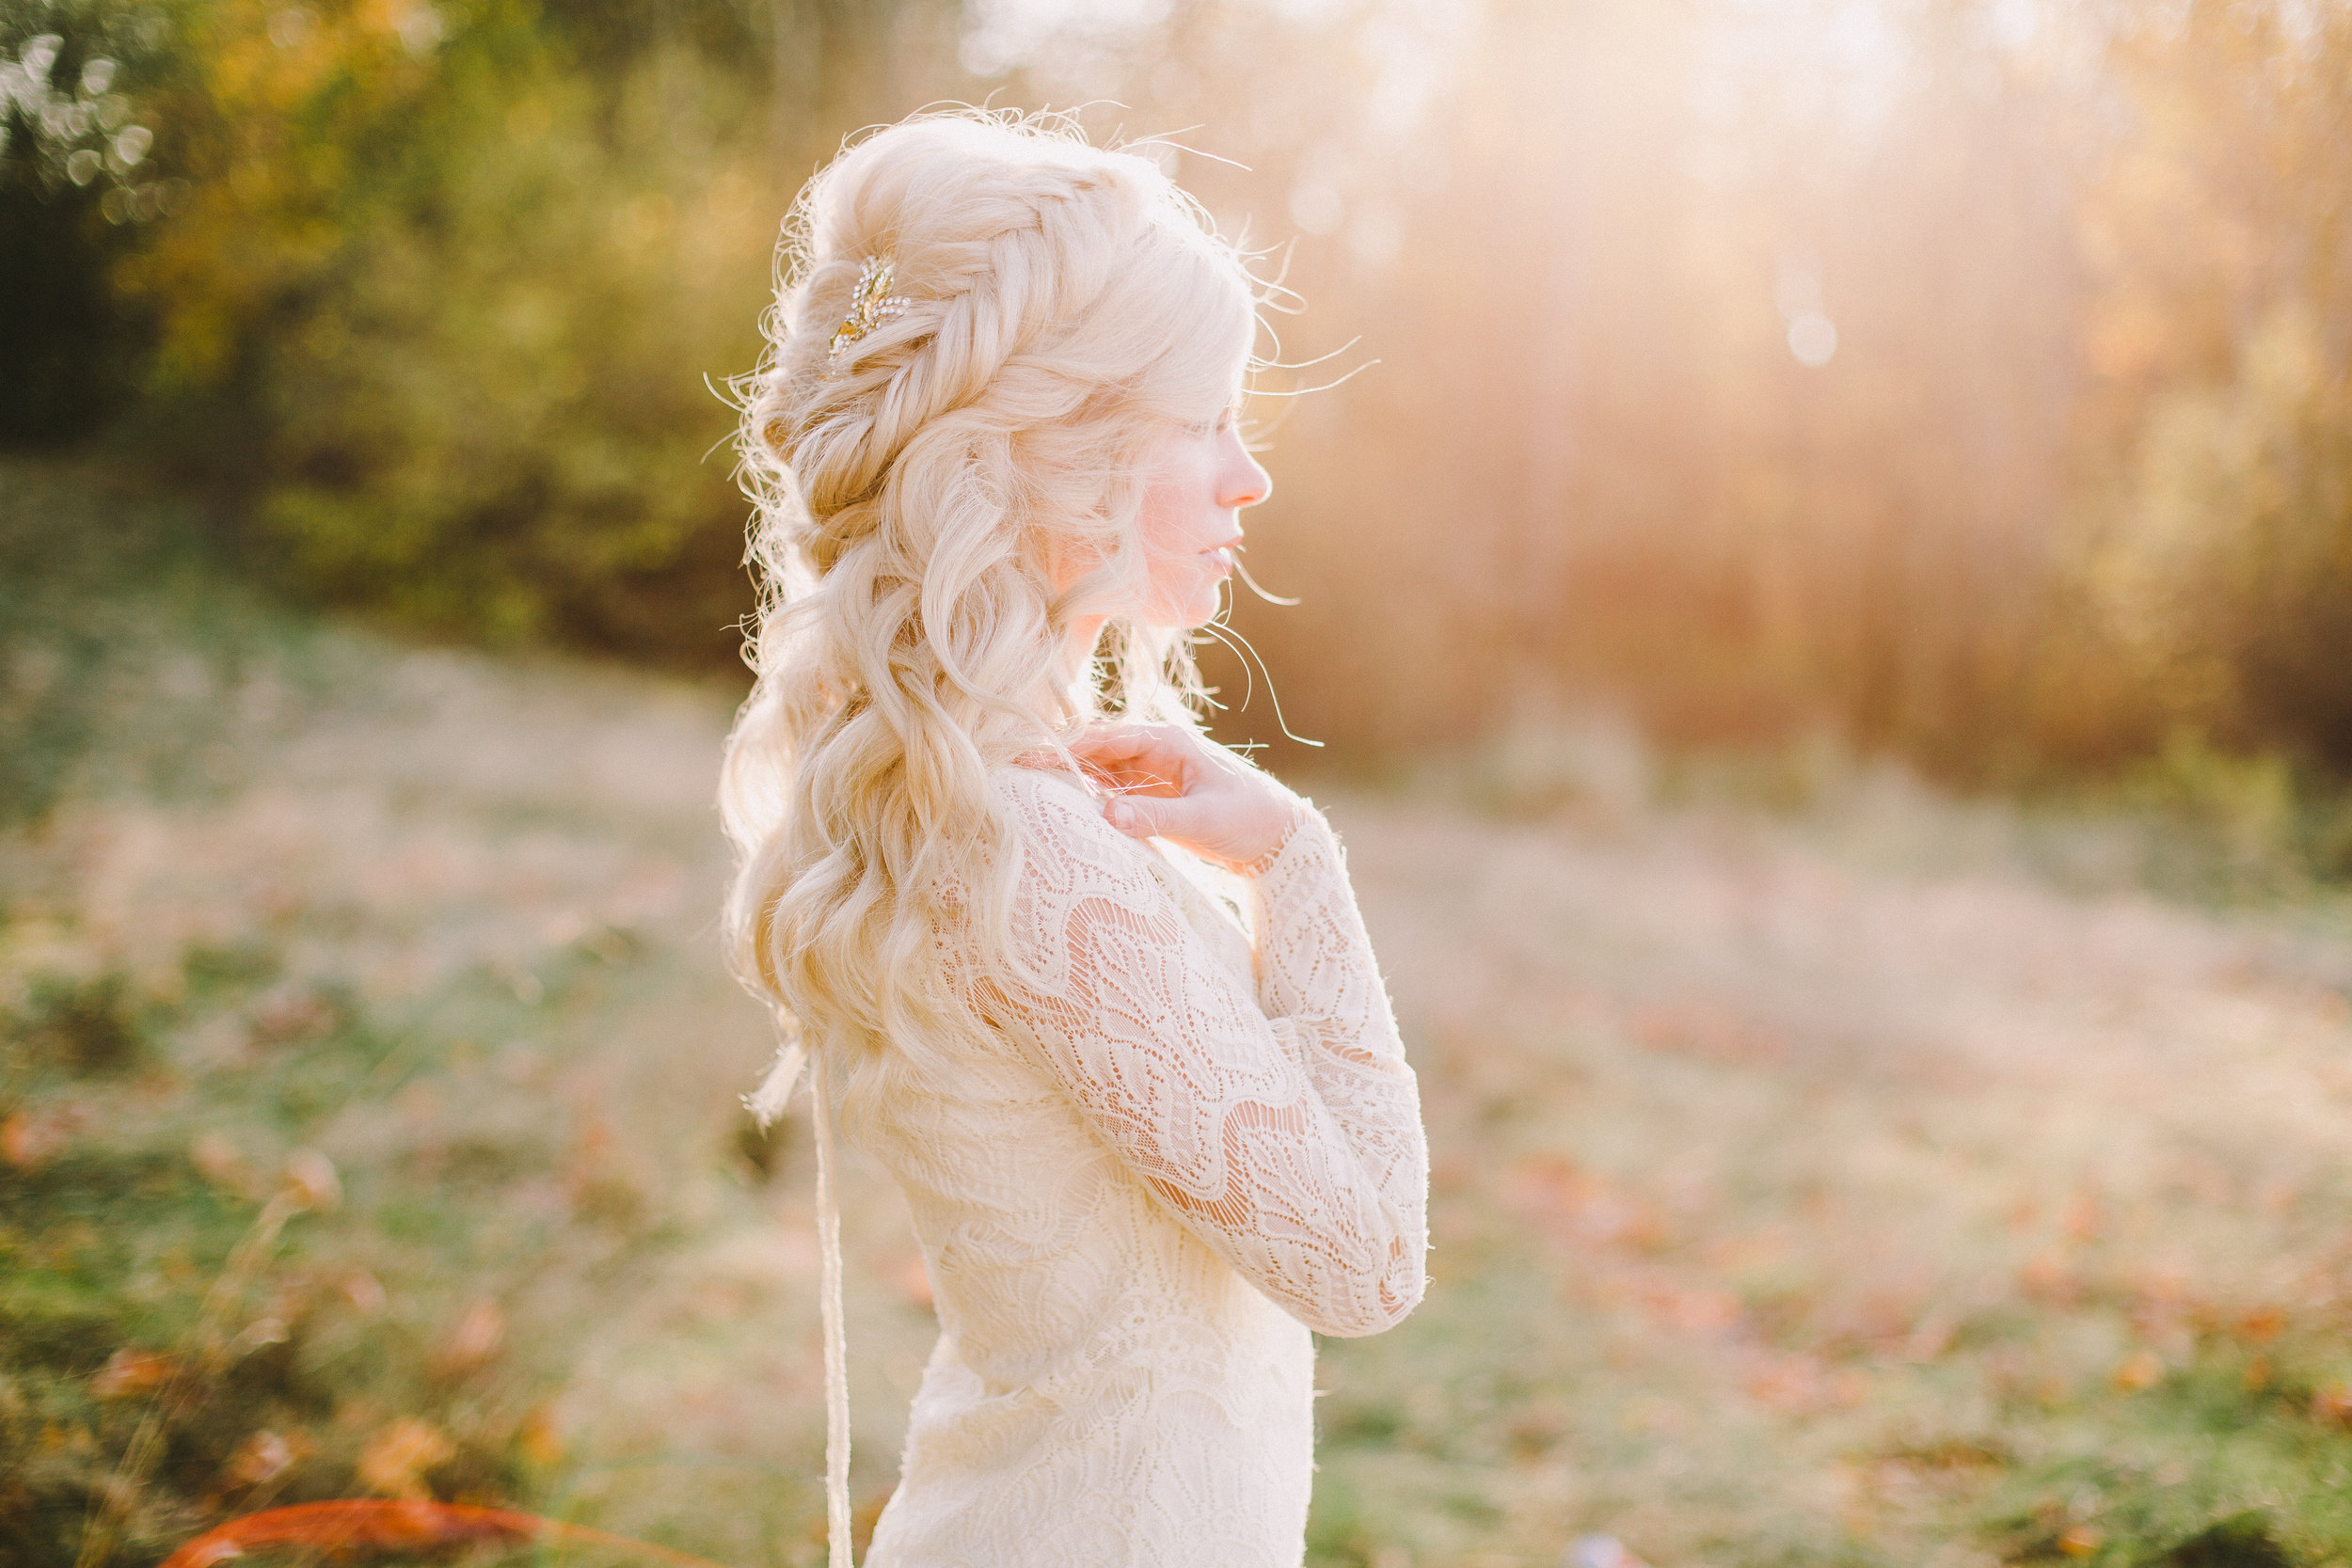 Bridal Team - Skin focused airbrush makeup paired with romantic hair styling, our bridal team is here to kick your wedding day off to a relaxing start!